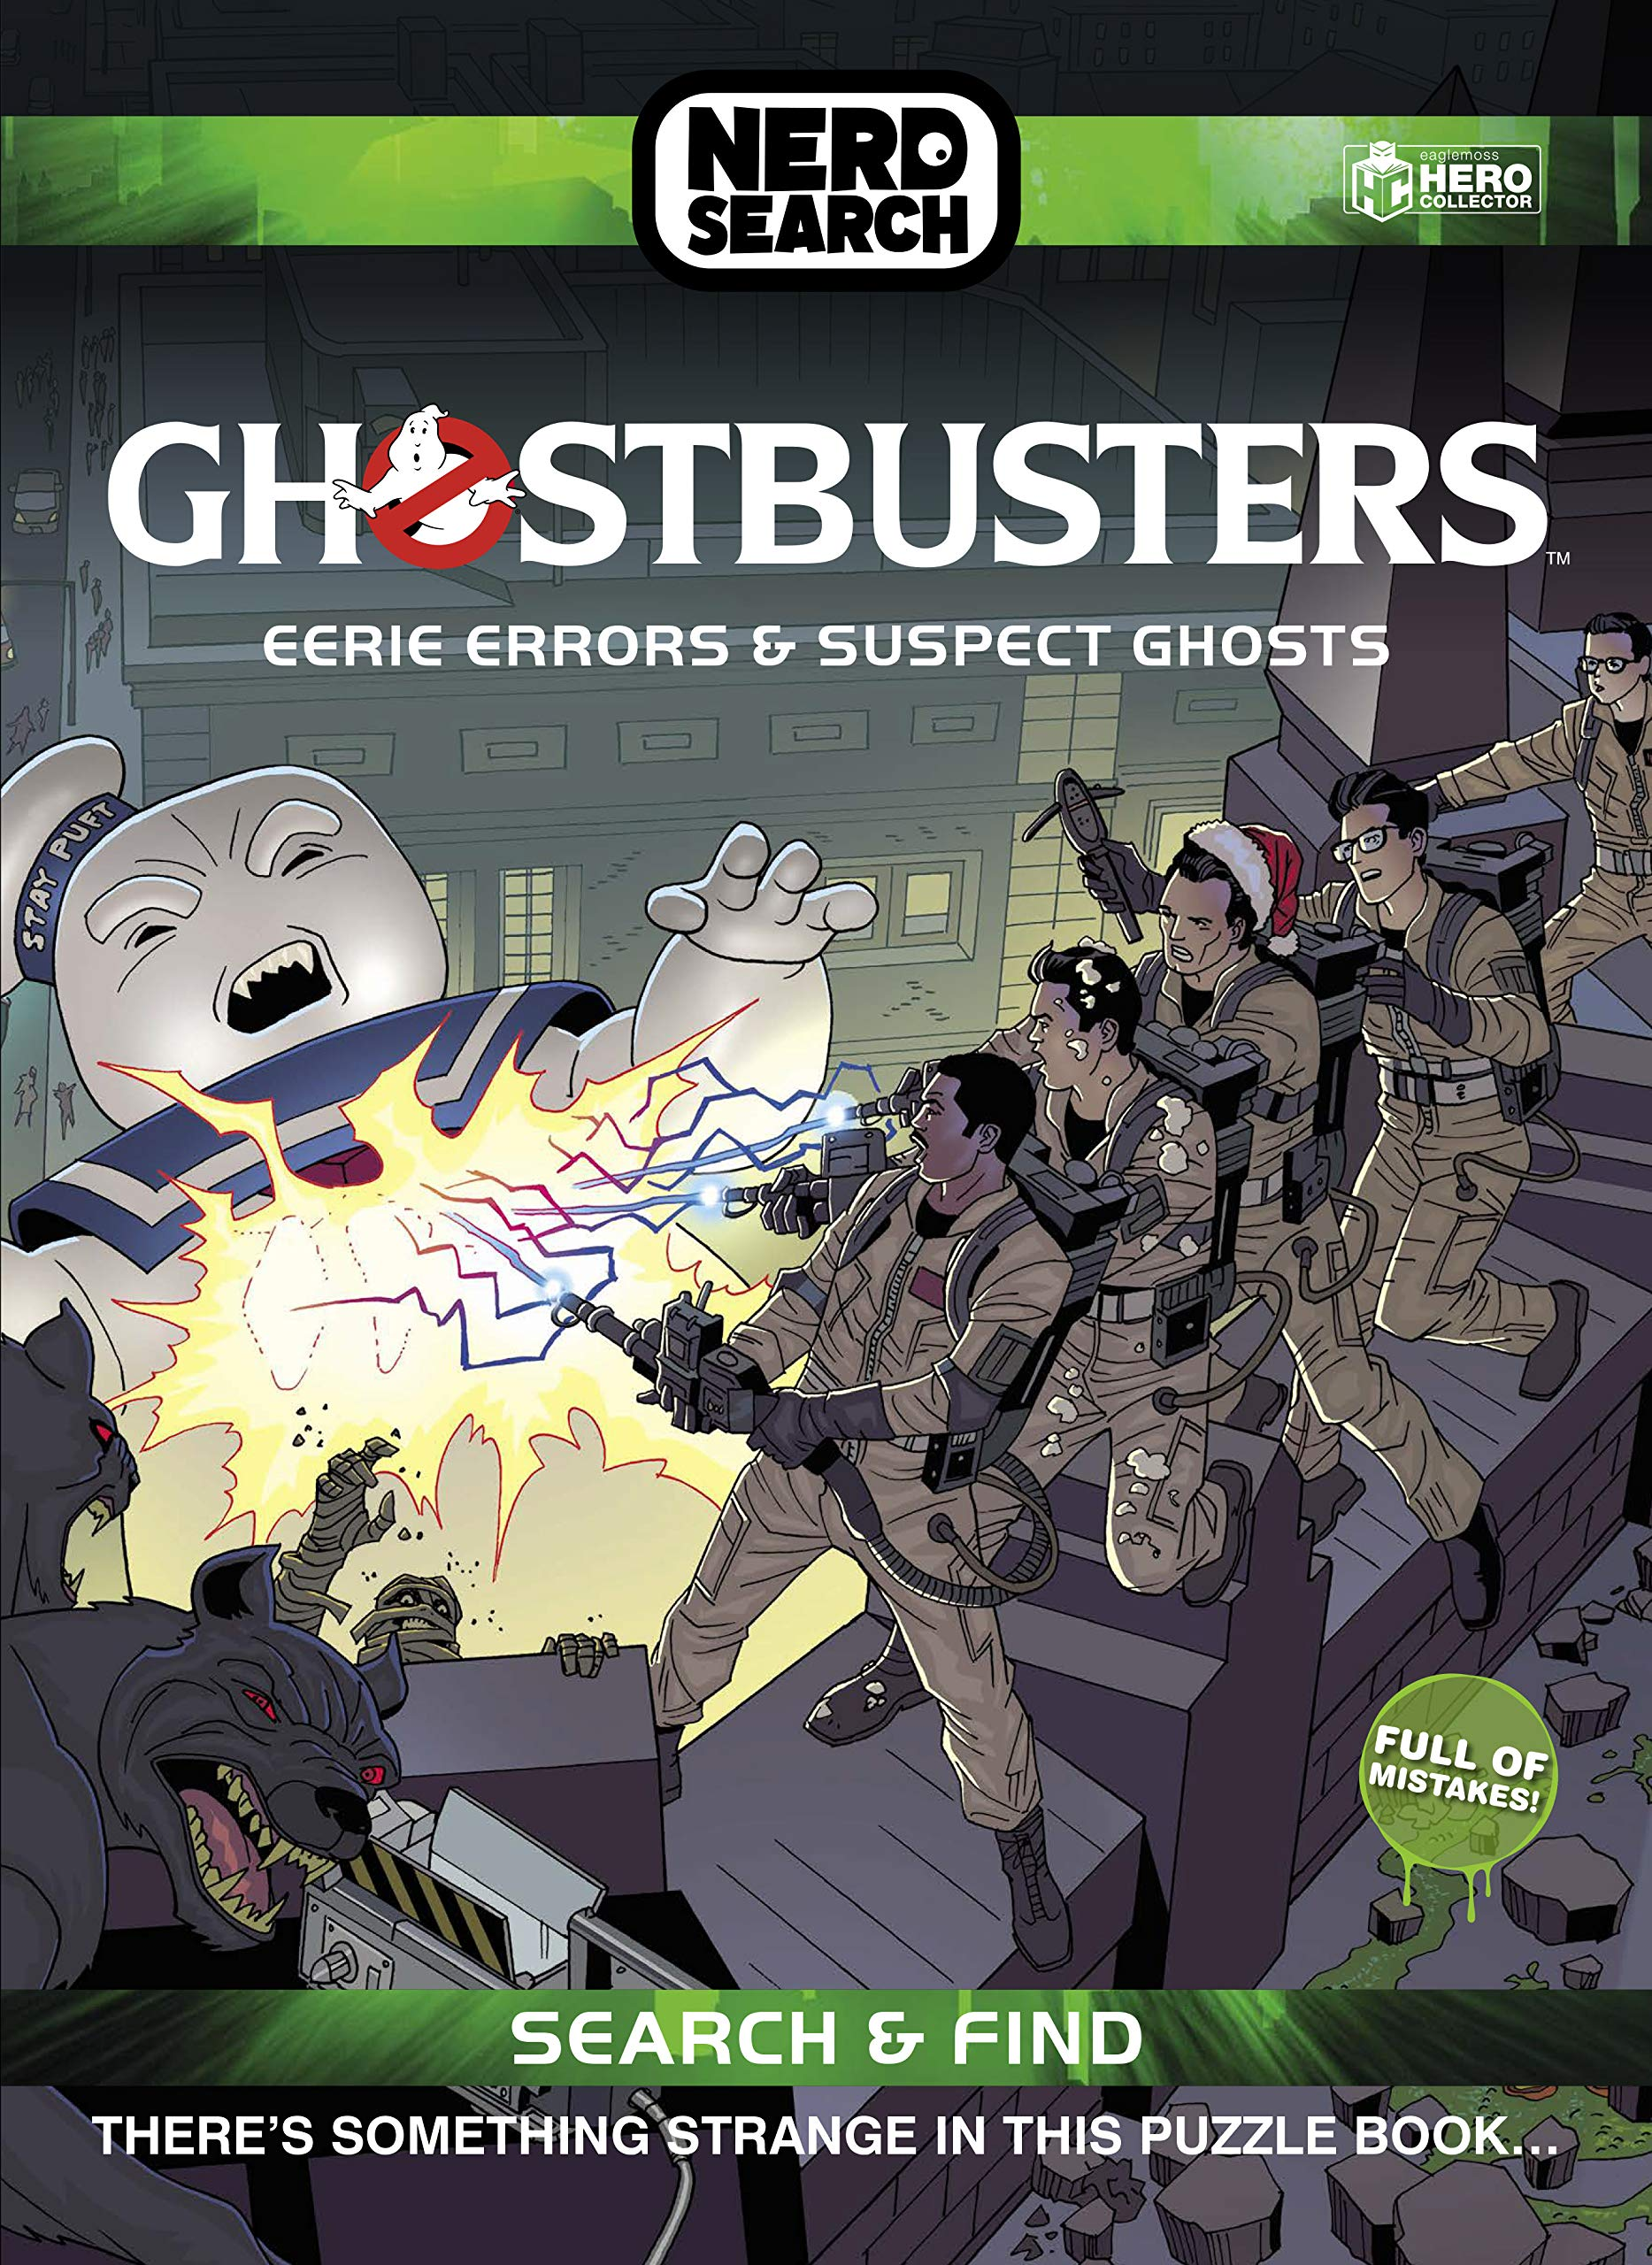 Ghostbusters Nerd Search: Eerie Errors & Suspect Ghosts